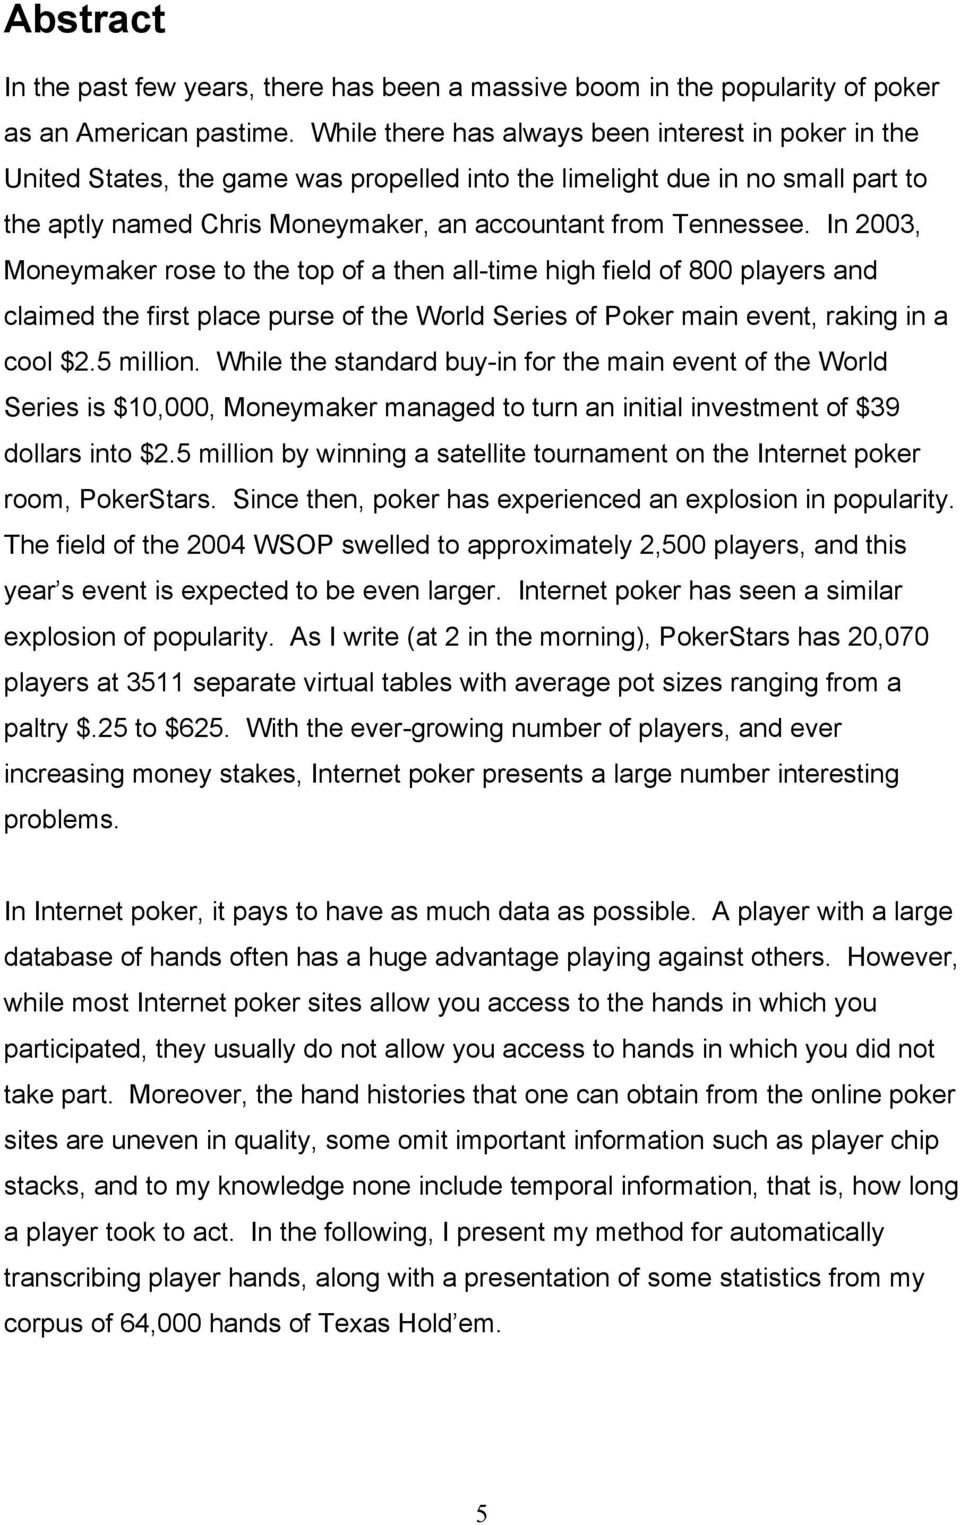 In 2003, Moneymaker rose to the top of a then all-time high field of 800 players and claimed the first place purse of the World Series of Poker main event, raking in a cool $2.5 million.